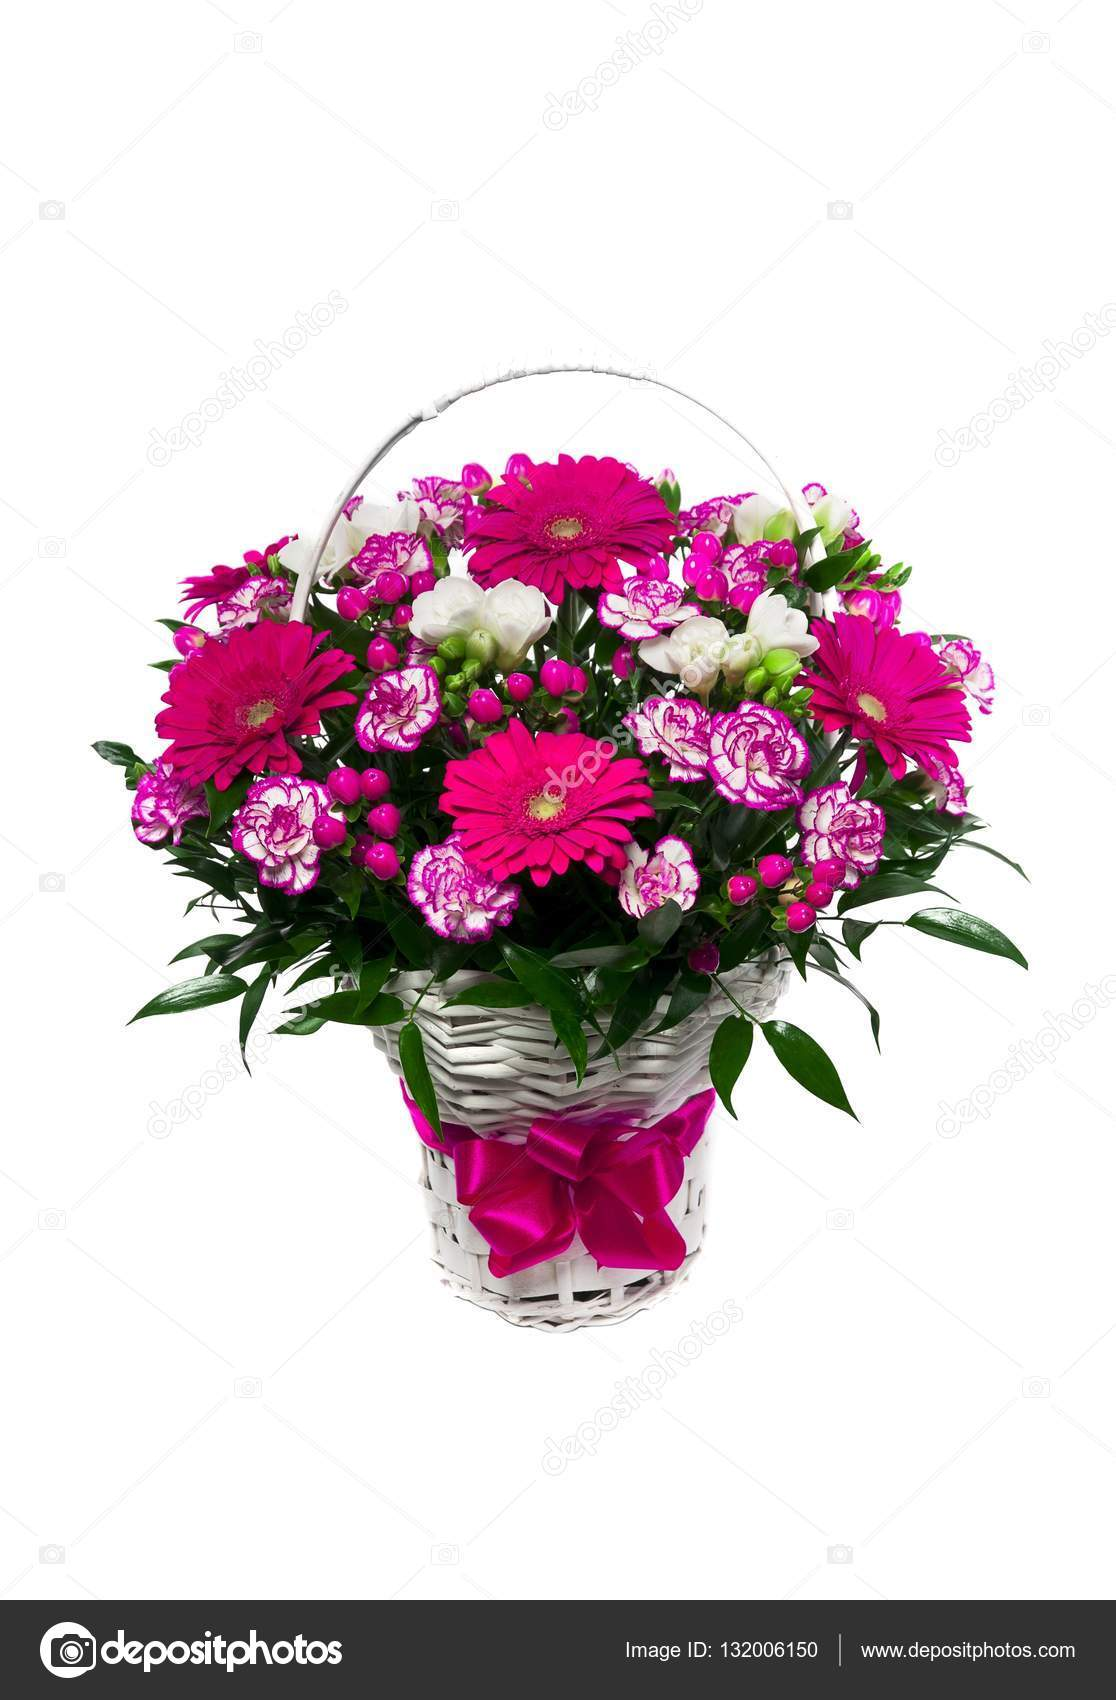 Beautiful flowers in a basket stock photo stockcrafter 132006150 beautiful flowers in a basket isolated photo by stockcrafter izmirmasajfo